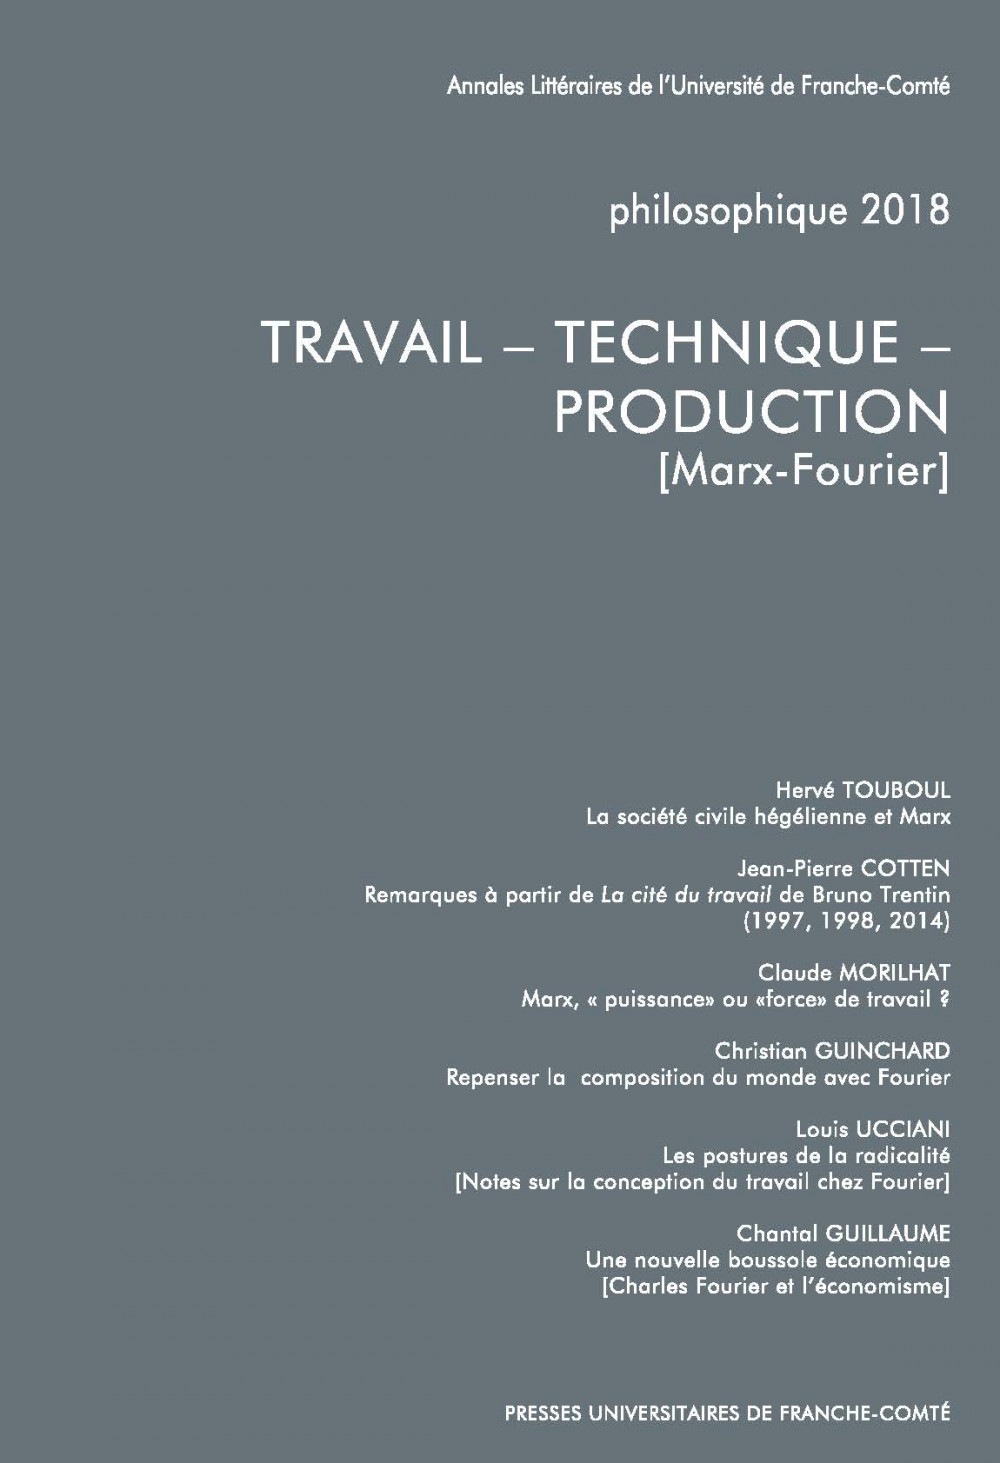 Travail - Technique - Production